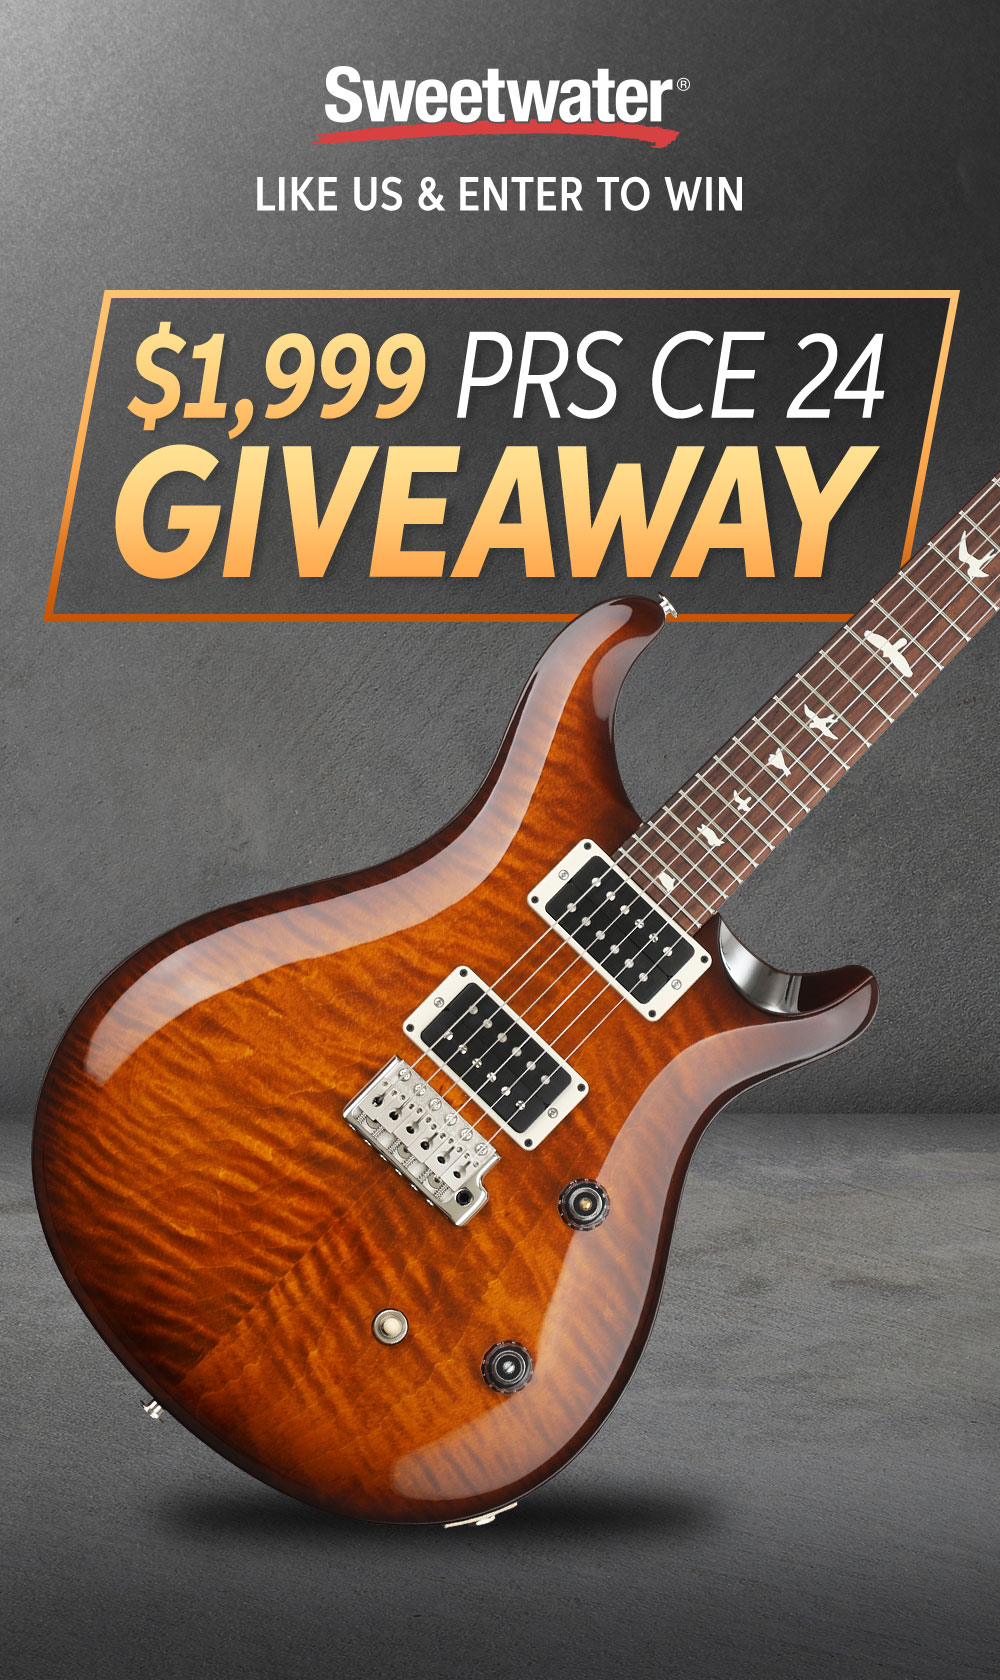 $1,999 PRS CE 24 Giveawayy! | Sweetwater com